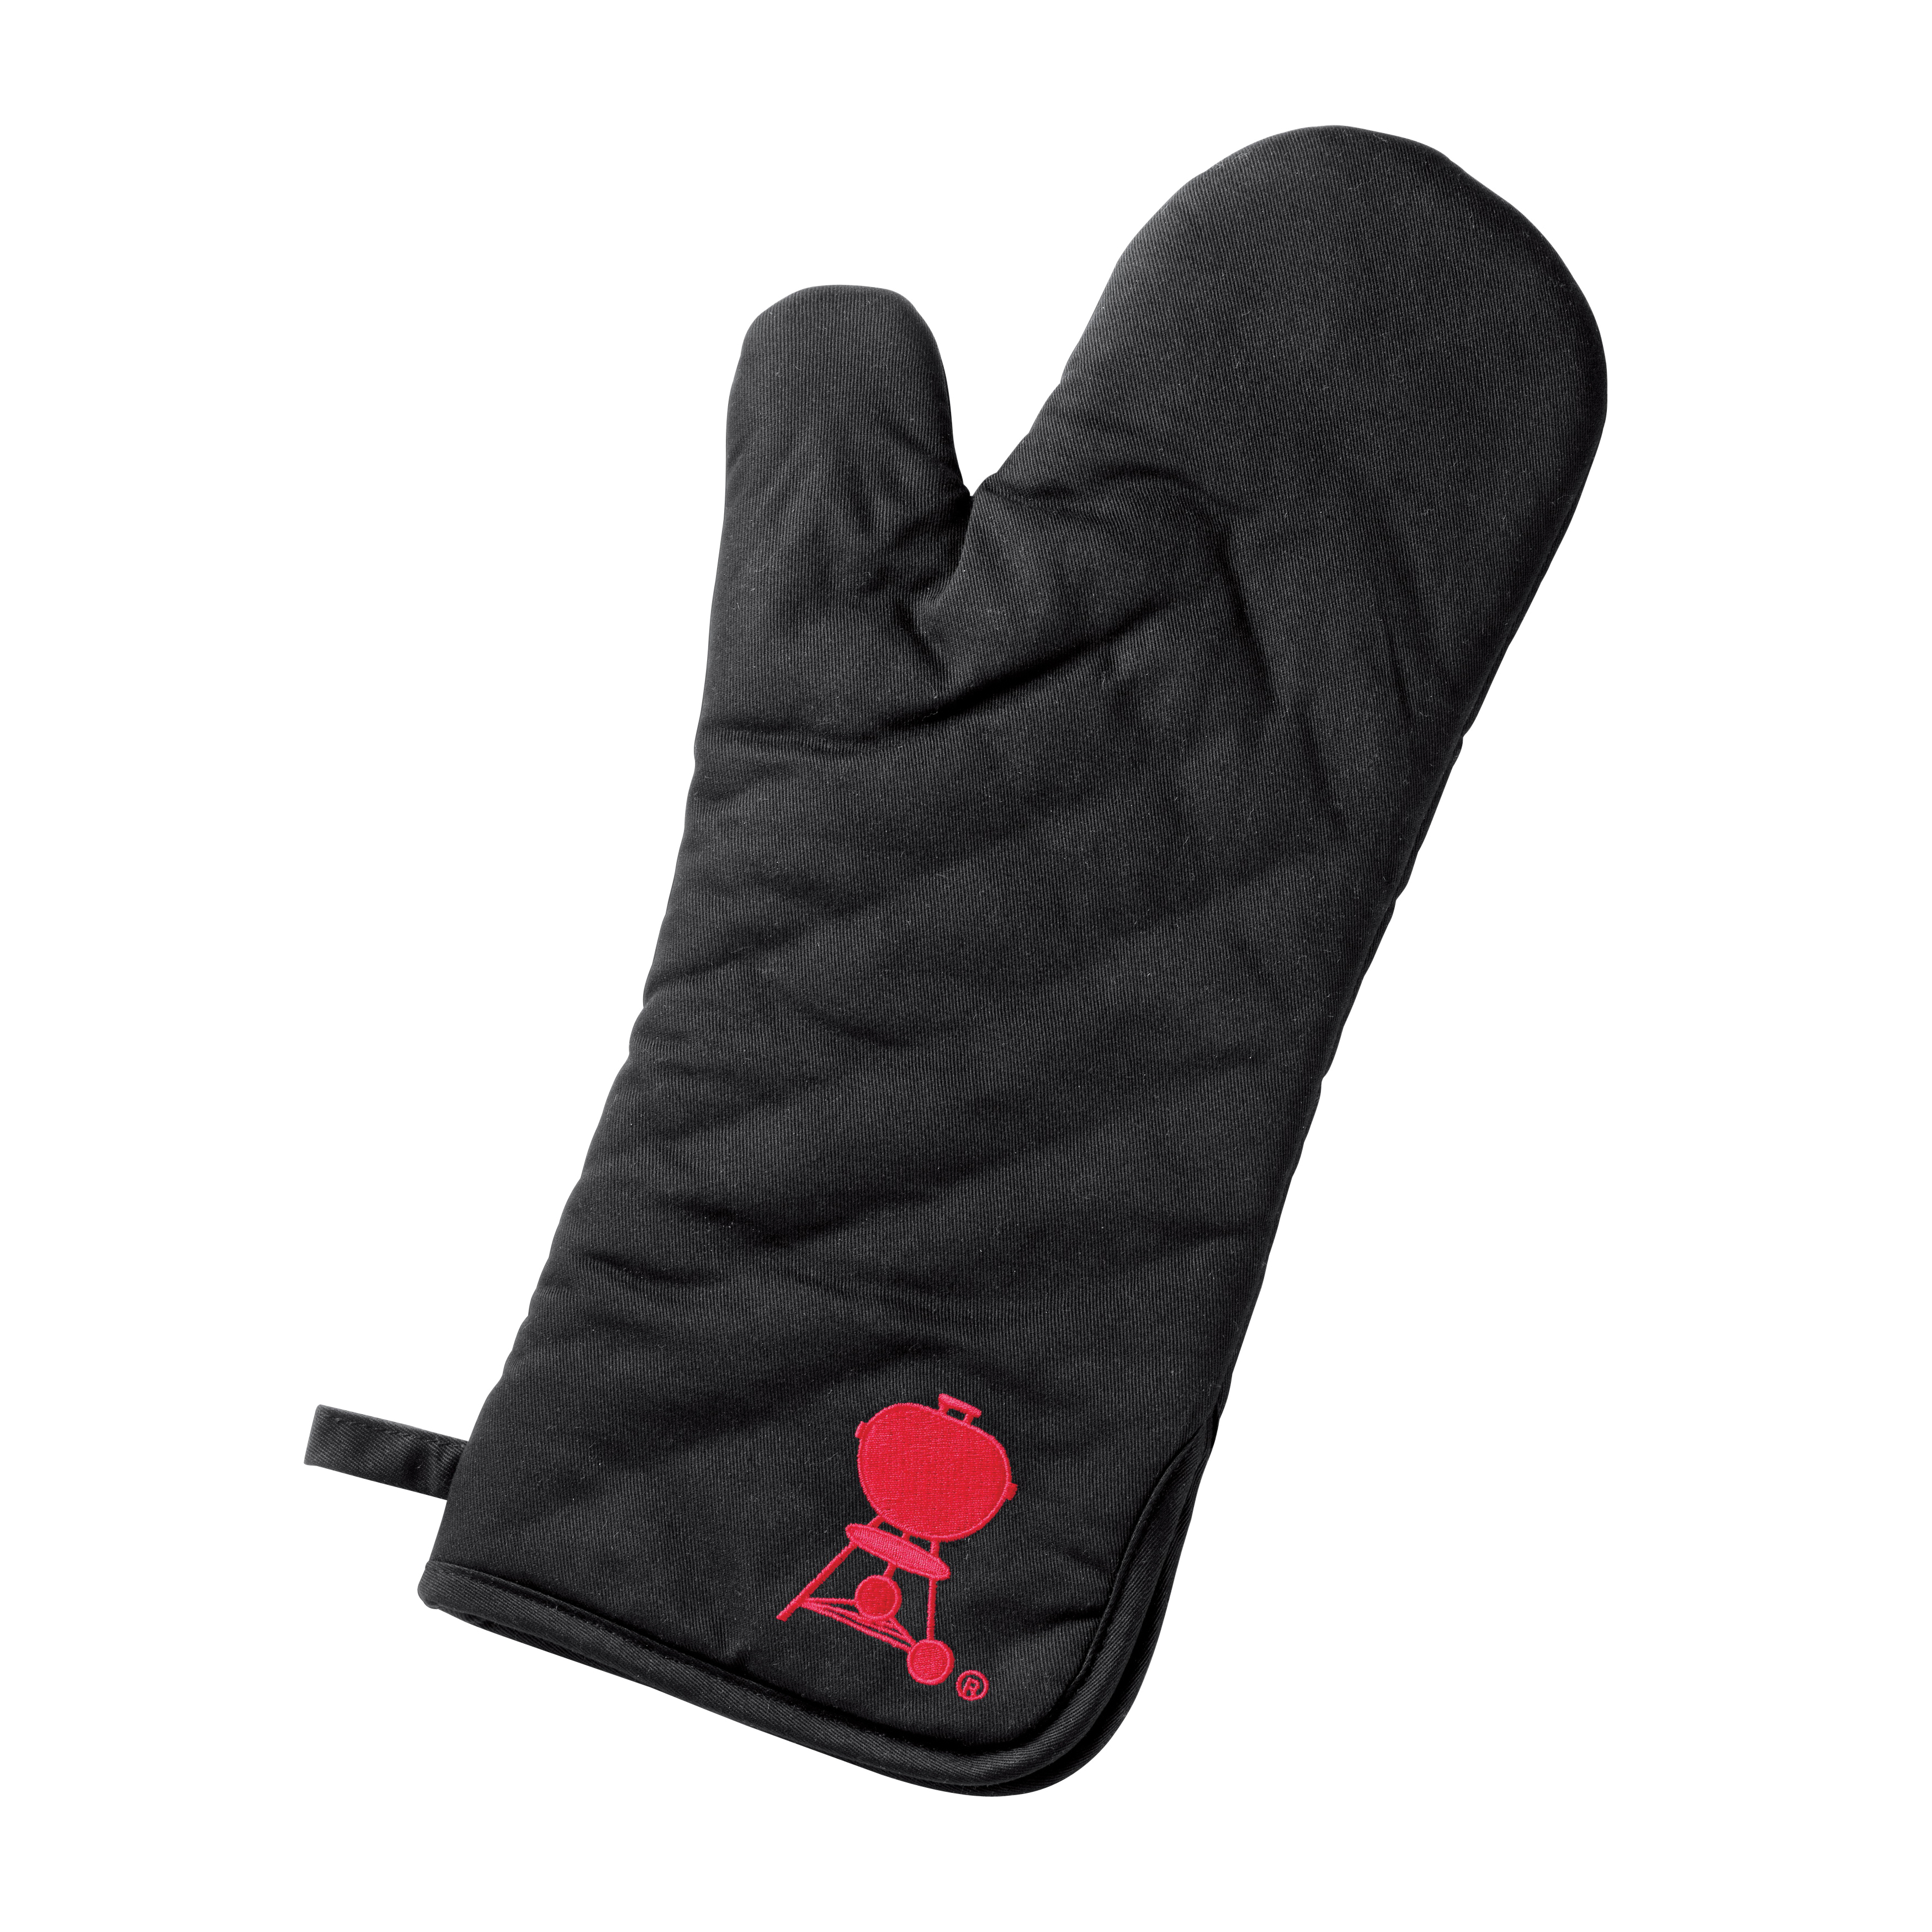 Picture of Weber 6532 Barbecue Mitt, One-Size, Foldable Cuff, Cotton, Black/Red